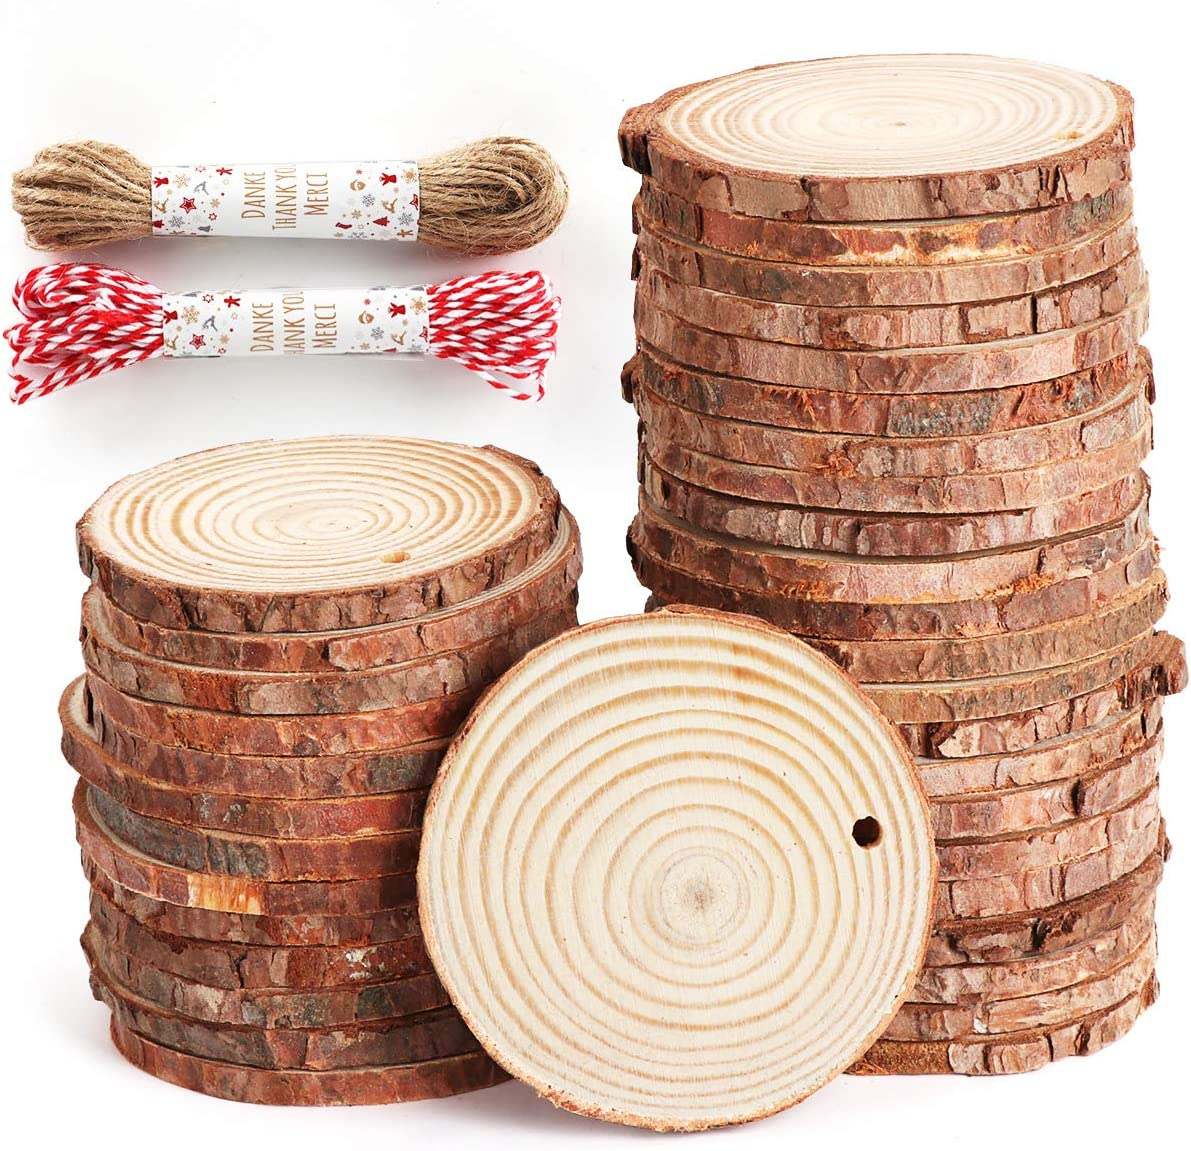 """Natural Wood Slices 40 Pcs 2.4-2.8/"""" Unfinished Wooden Rounds for Arts Crafts DIY Predrilled Wood Circles Christmas Tree Ornaments Wedding Decor"""